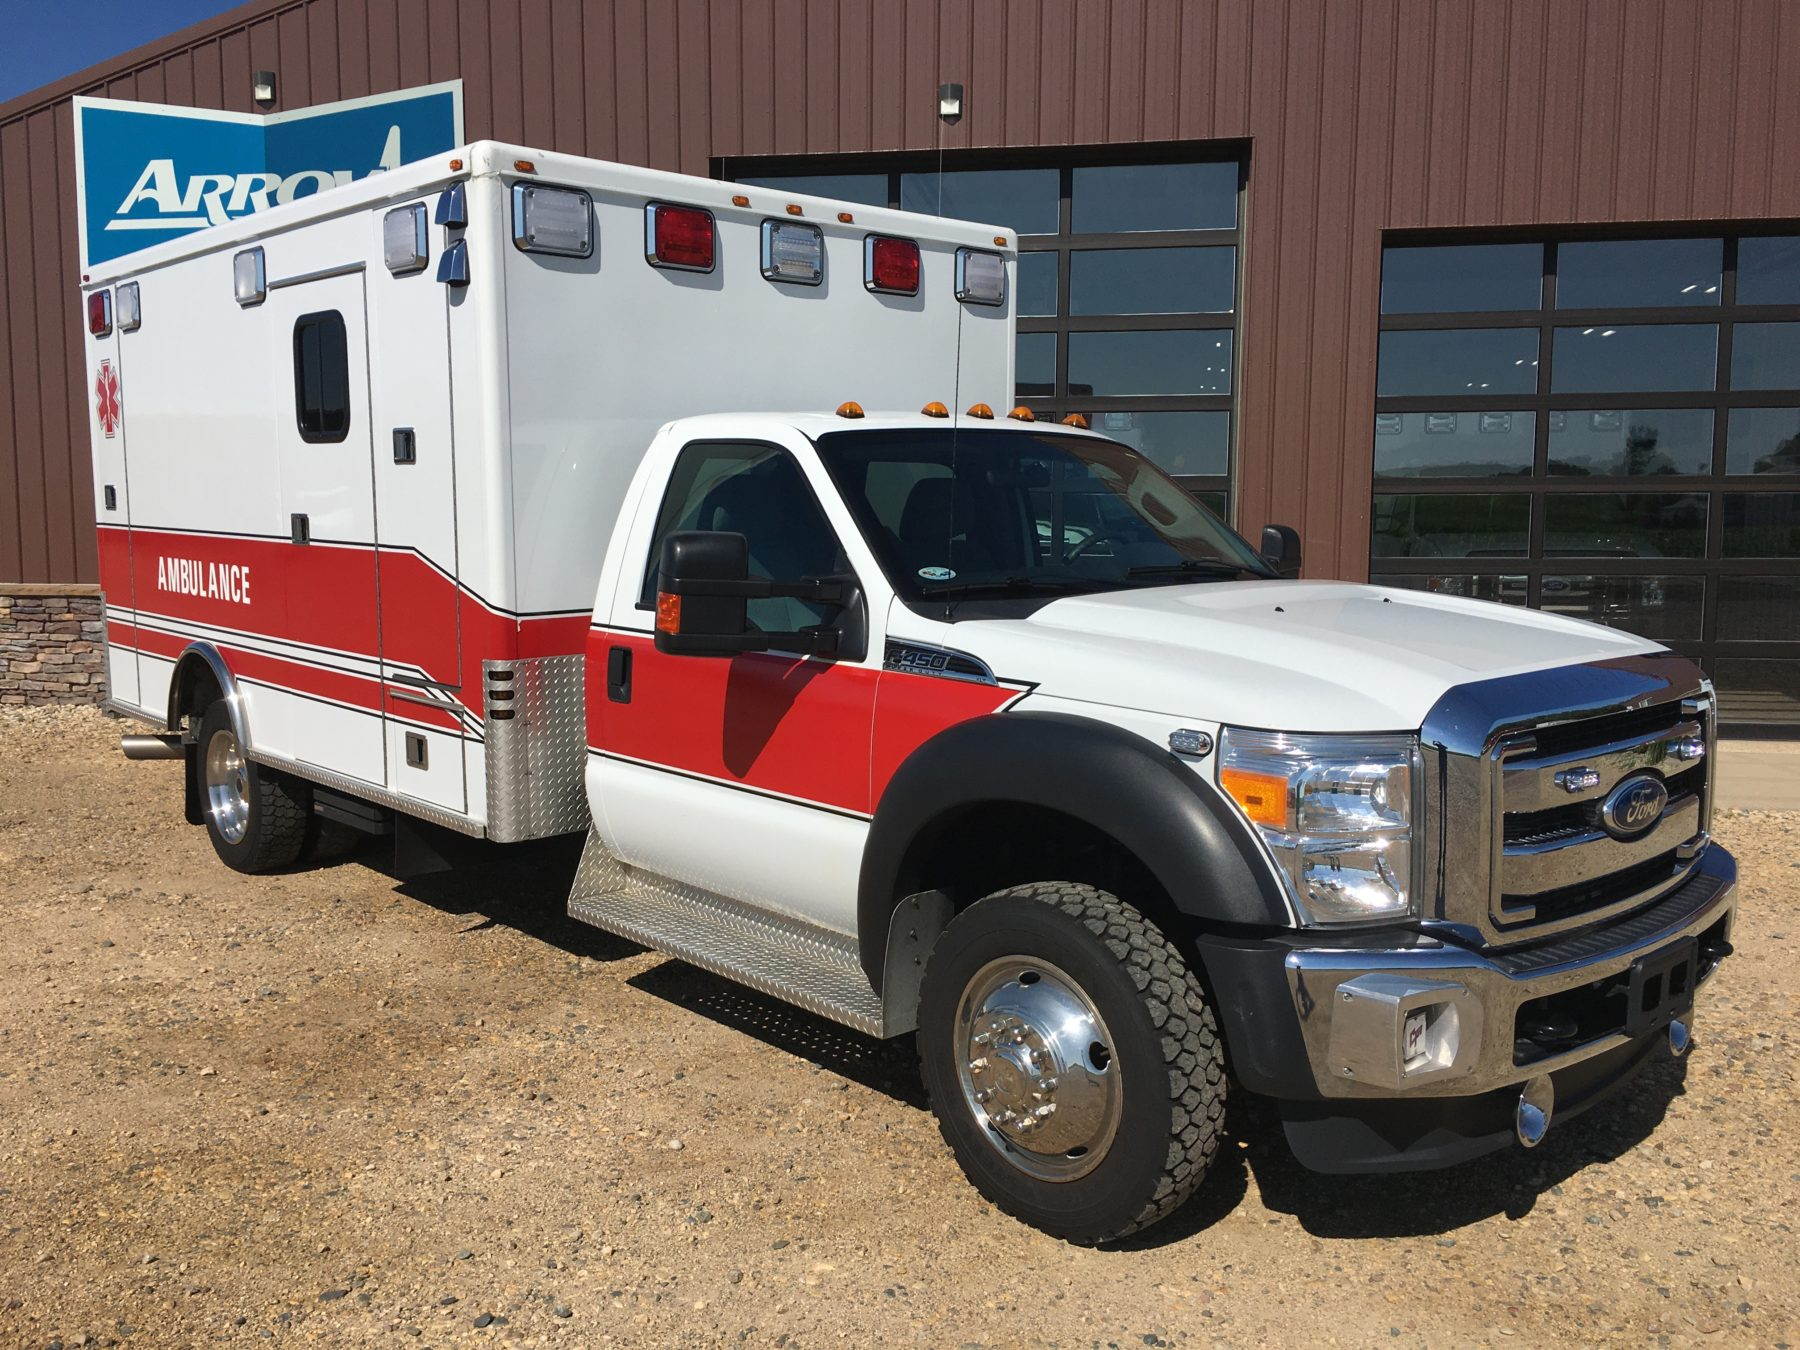 2011 Ford F450 4x4 Heavy Duty Ambulance For Sale – Picture 1